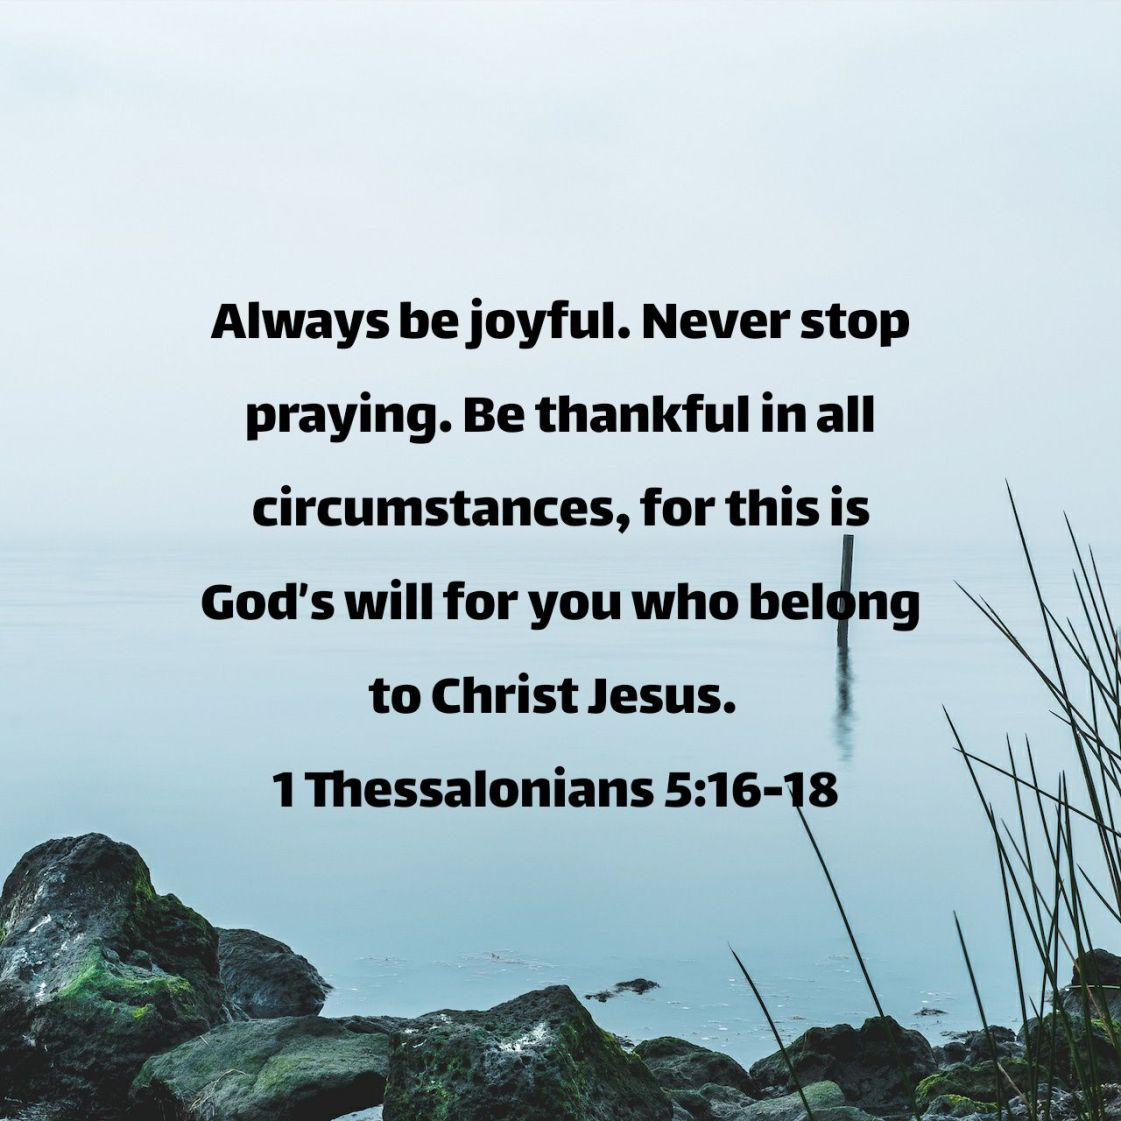 Always be joyful. Never stop praying. Be thankful in all circumstances, for this is God's will for you who belong to Christ Jesus. - 1 Thessalonians 5:16-18 NLT